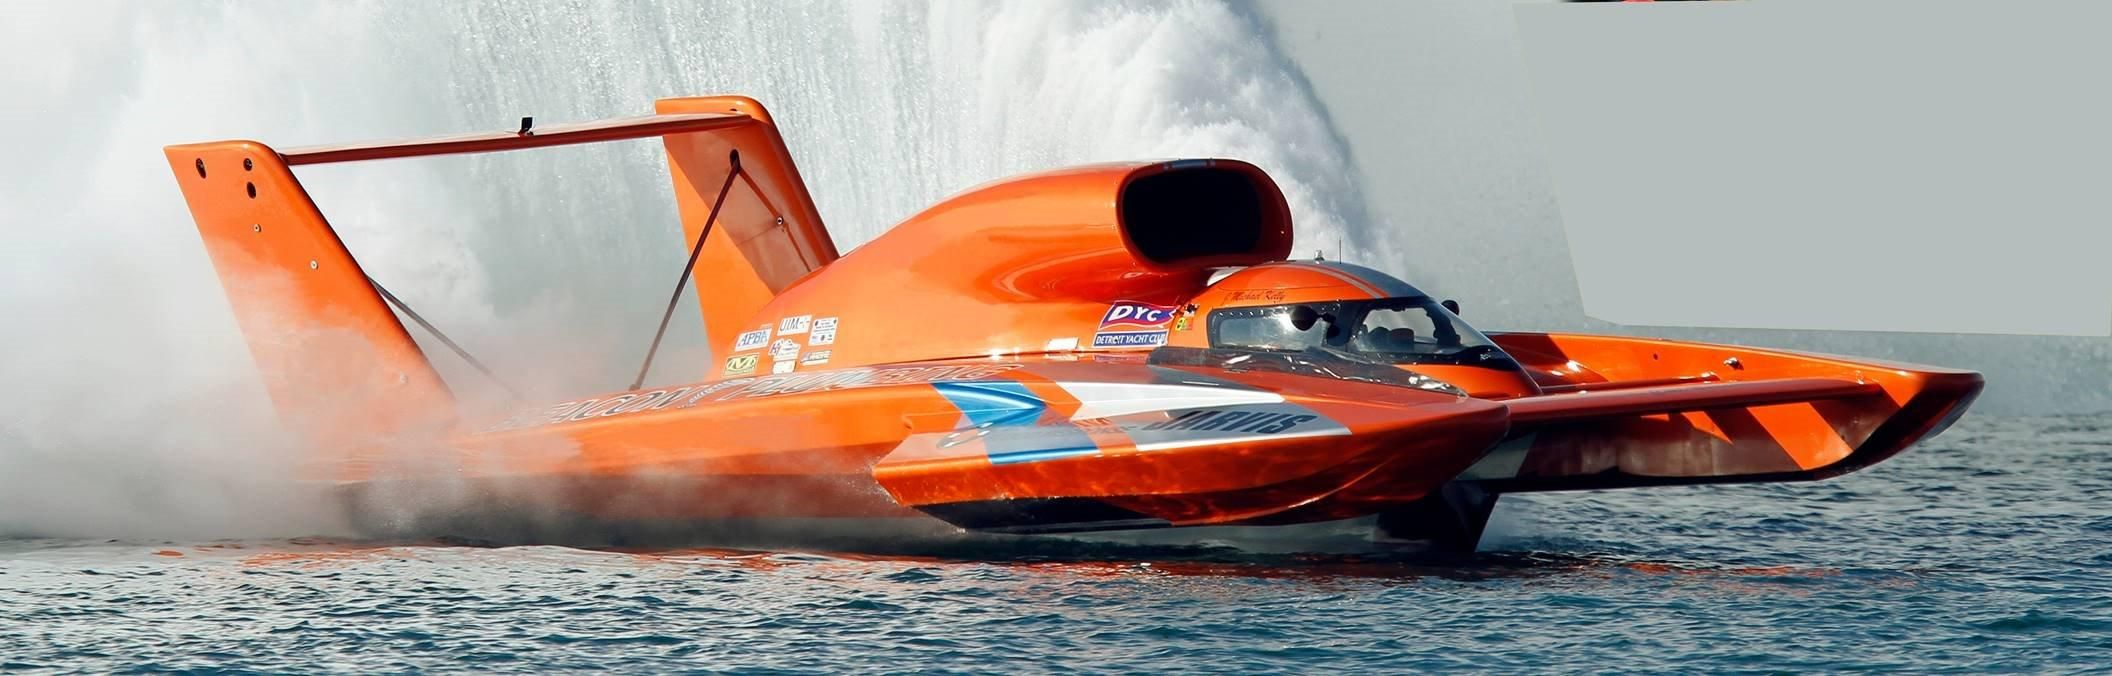 2011 Hydroplane Unlimited Power Boat For Sale - www ...